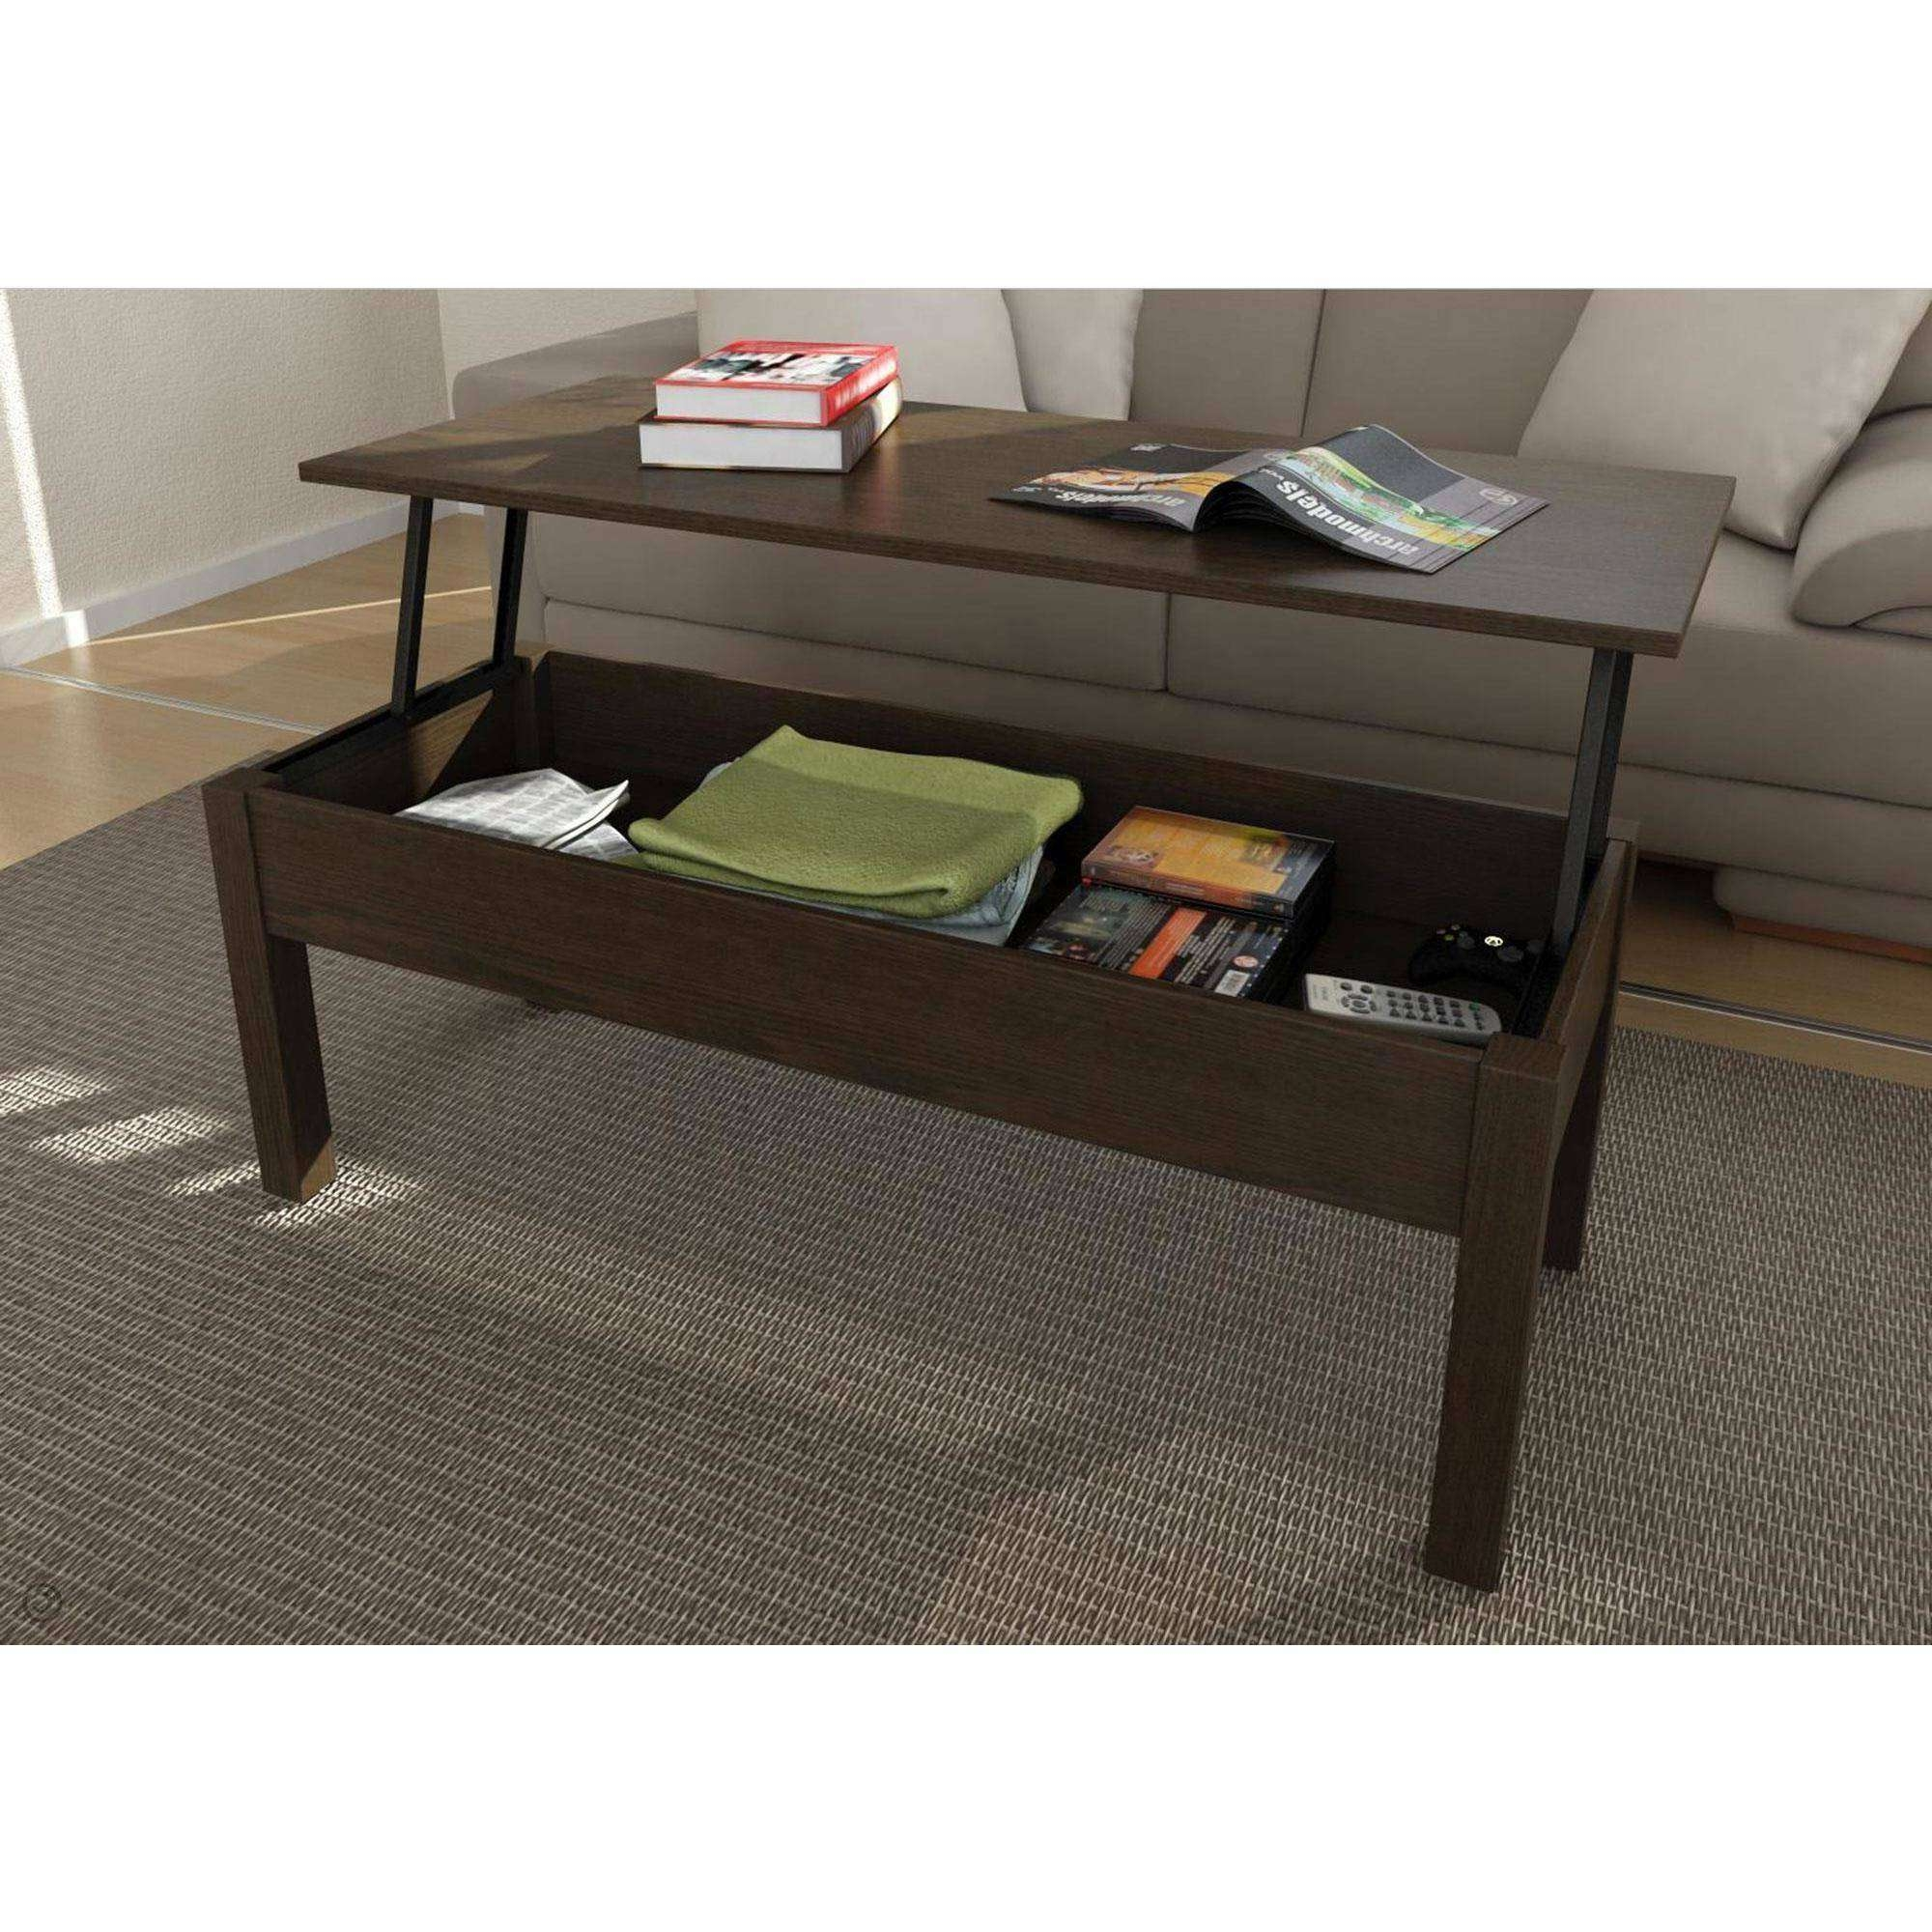 Furniture: Modern And Contemporary Design Of Espresso Coffee Table Pertaining To Most Current Coffee Tables With Shelf Underneath (View 8 of 20)